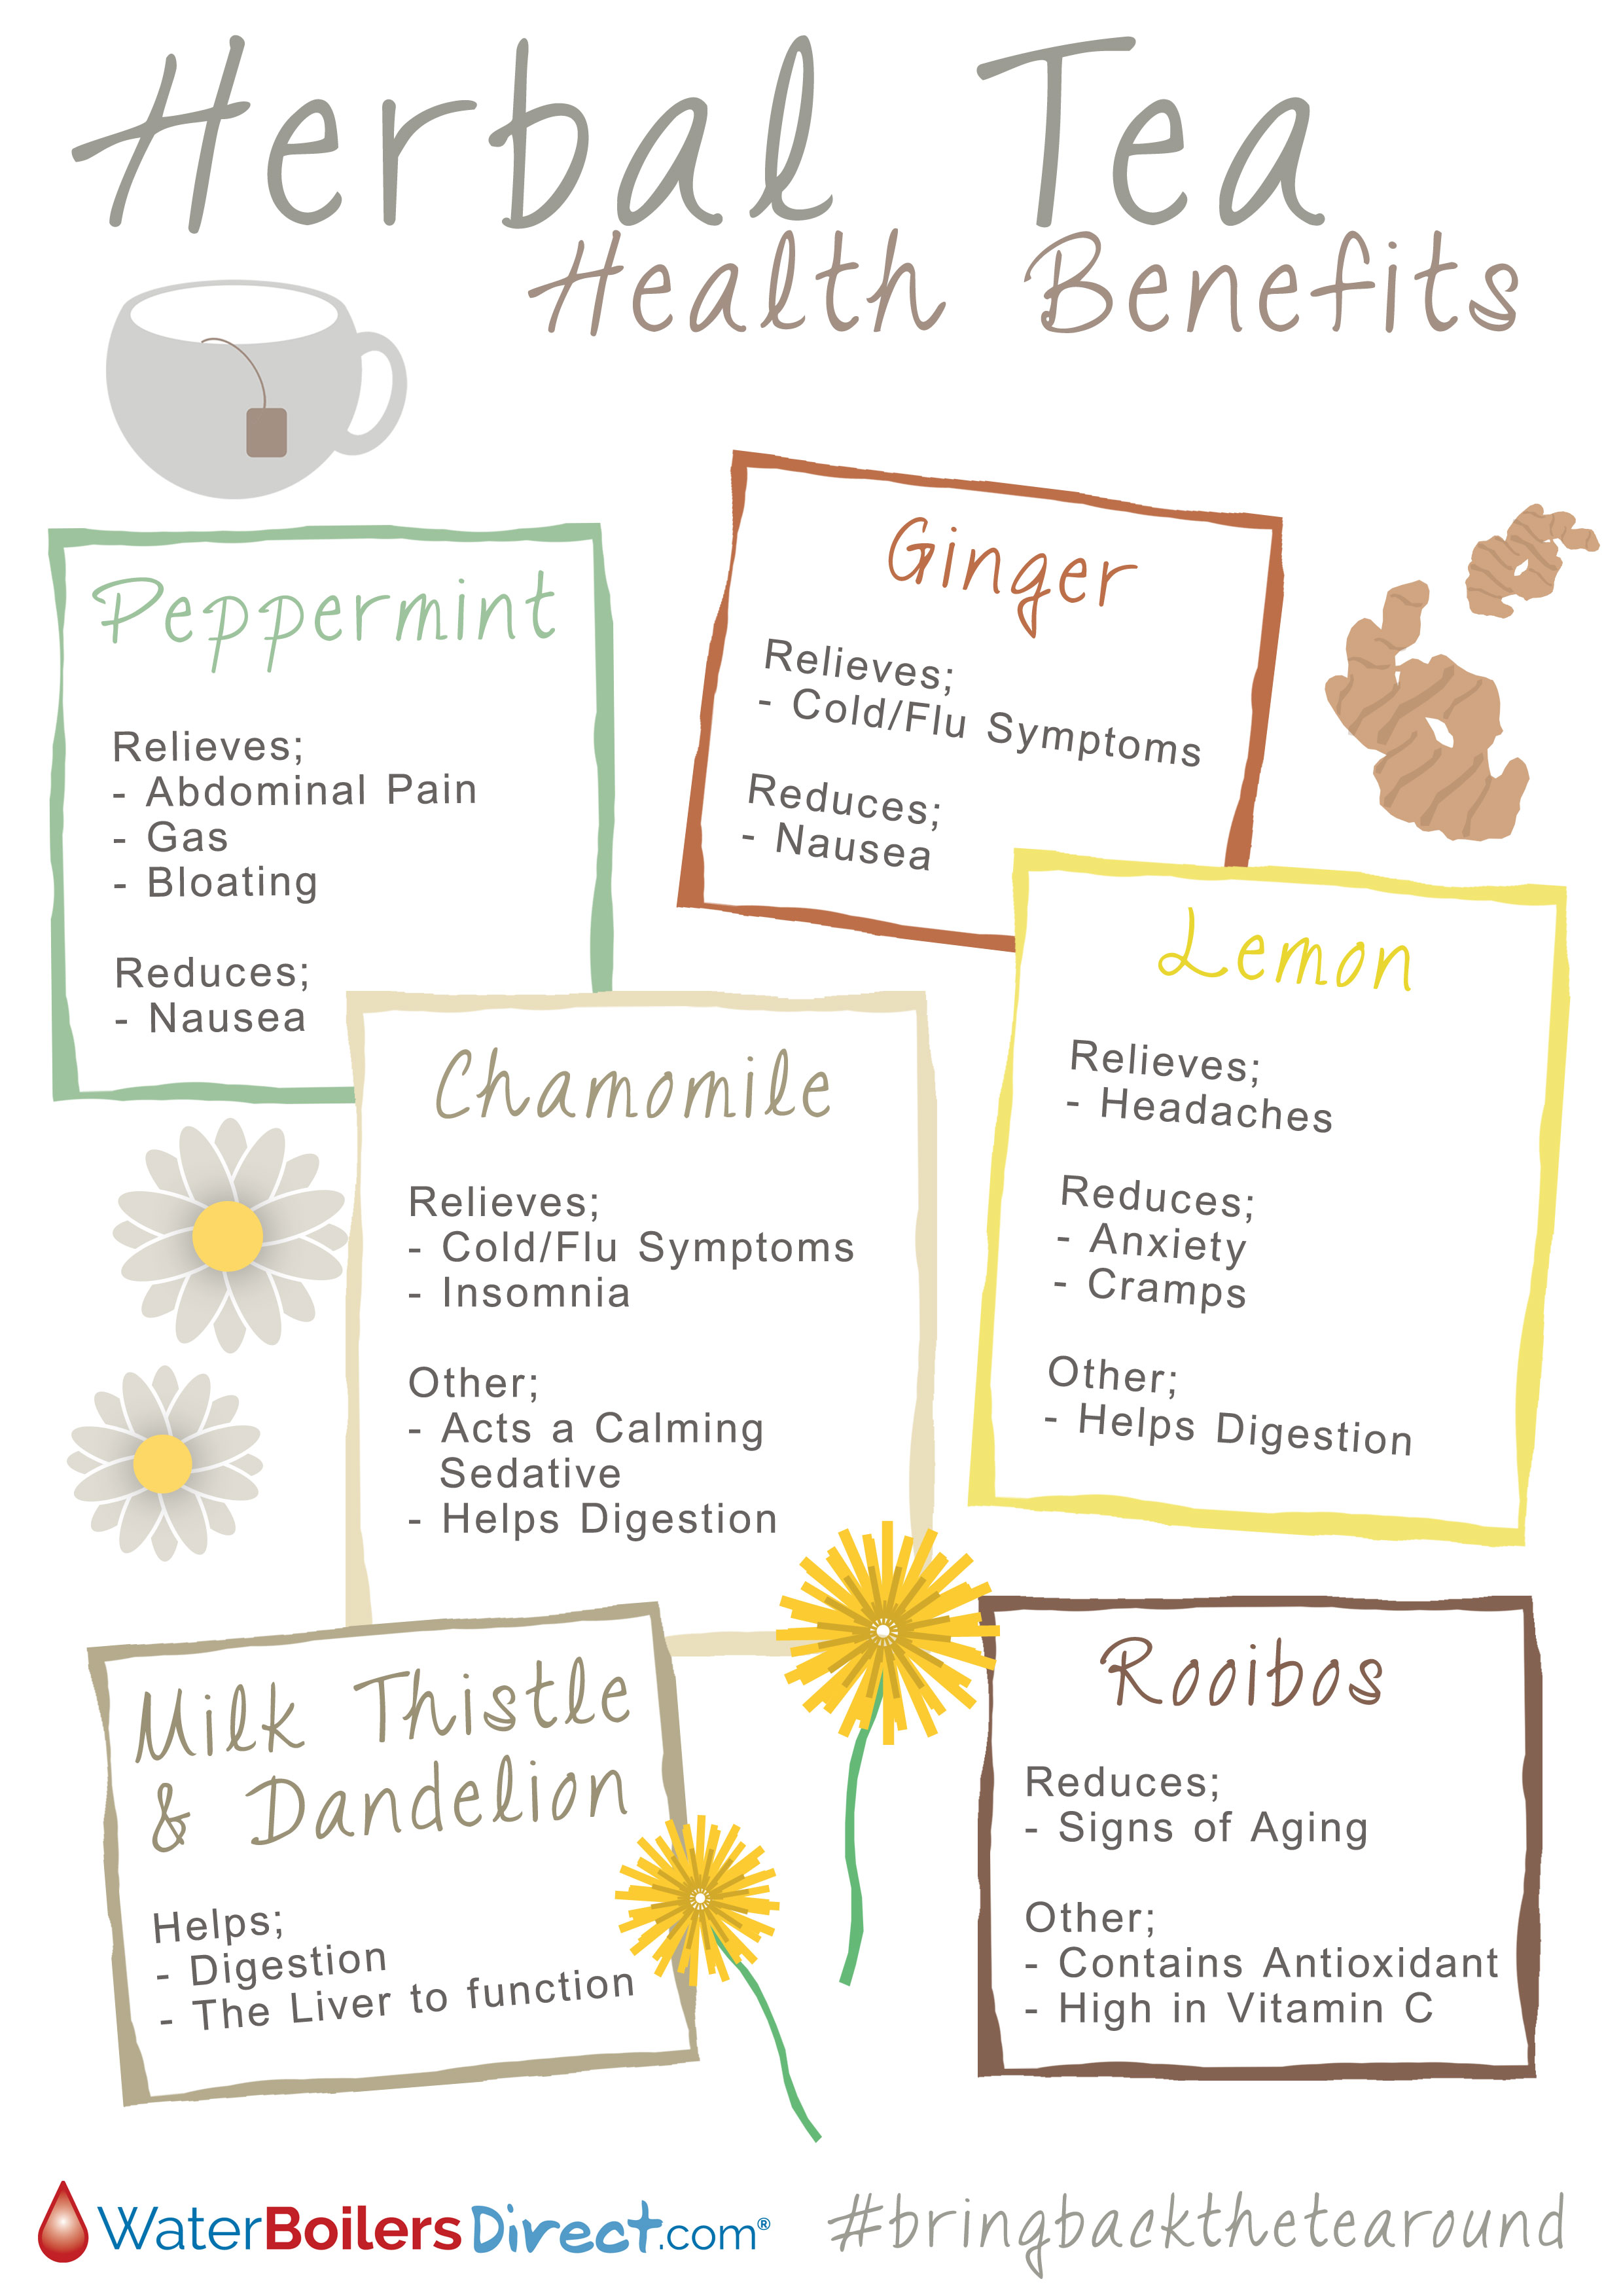 Chamomile, Ginger Or Peppermint? Health Benefits Of Herbal Tea Infographic